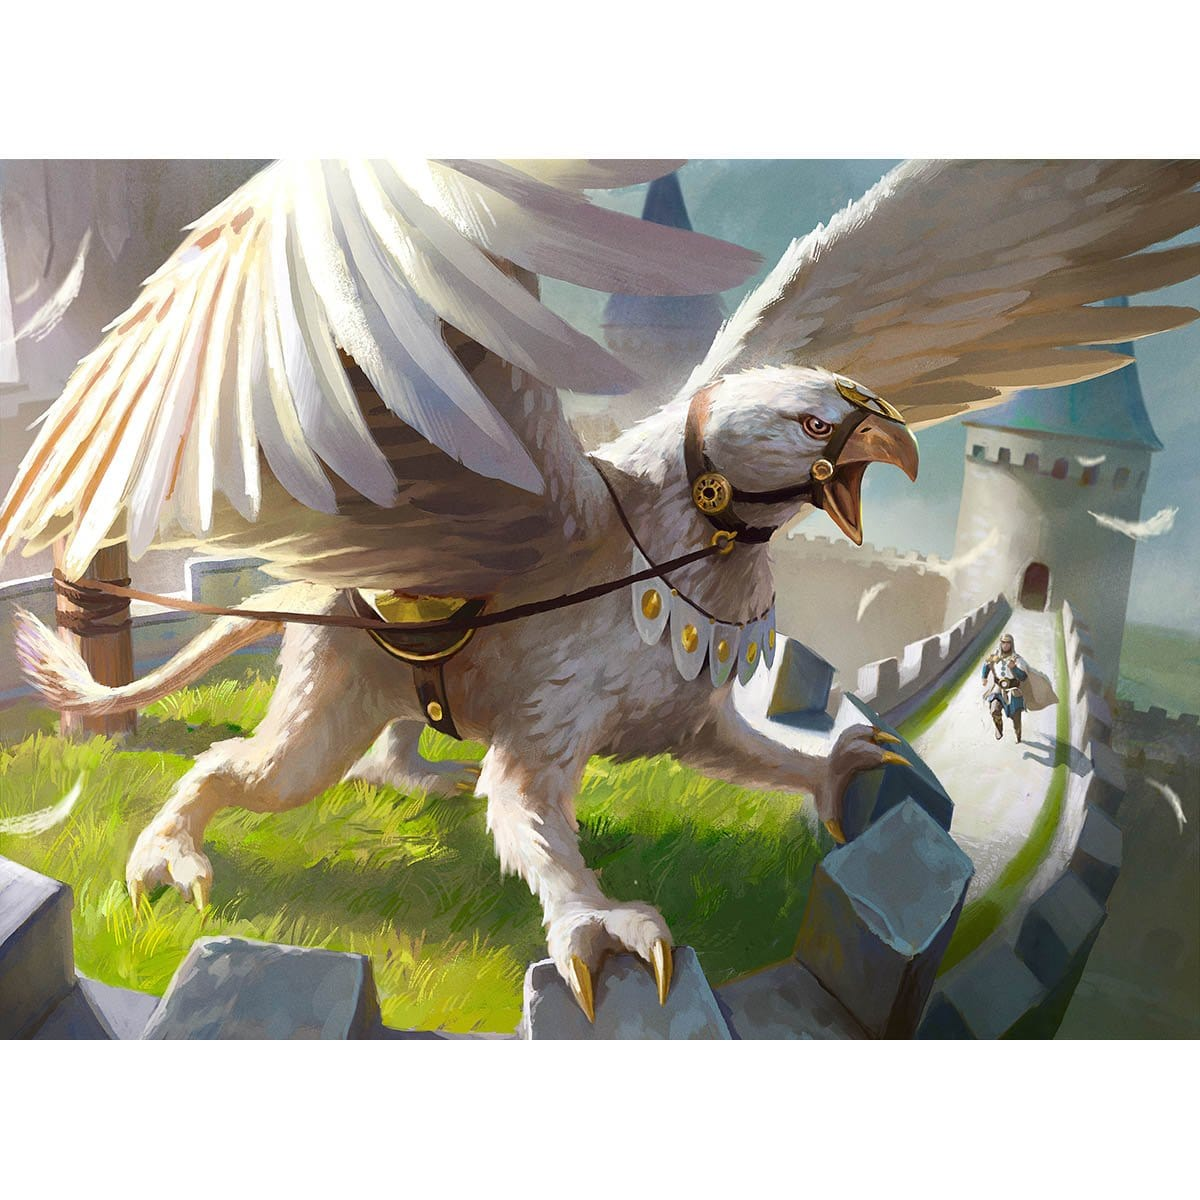 Garrison Griffin Print - Print - Original Magic Art - Accessories for Magic the Gathering and other card games